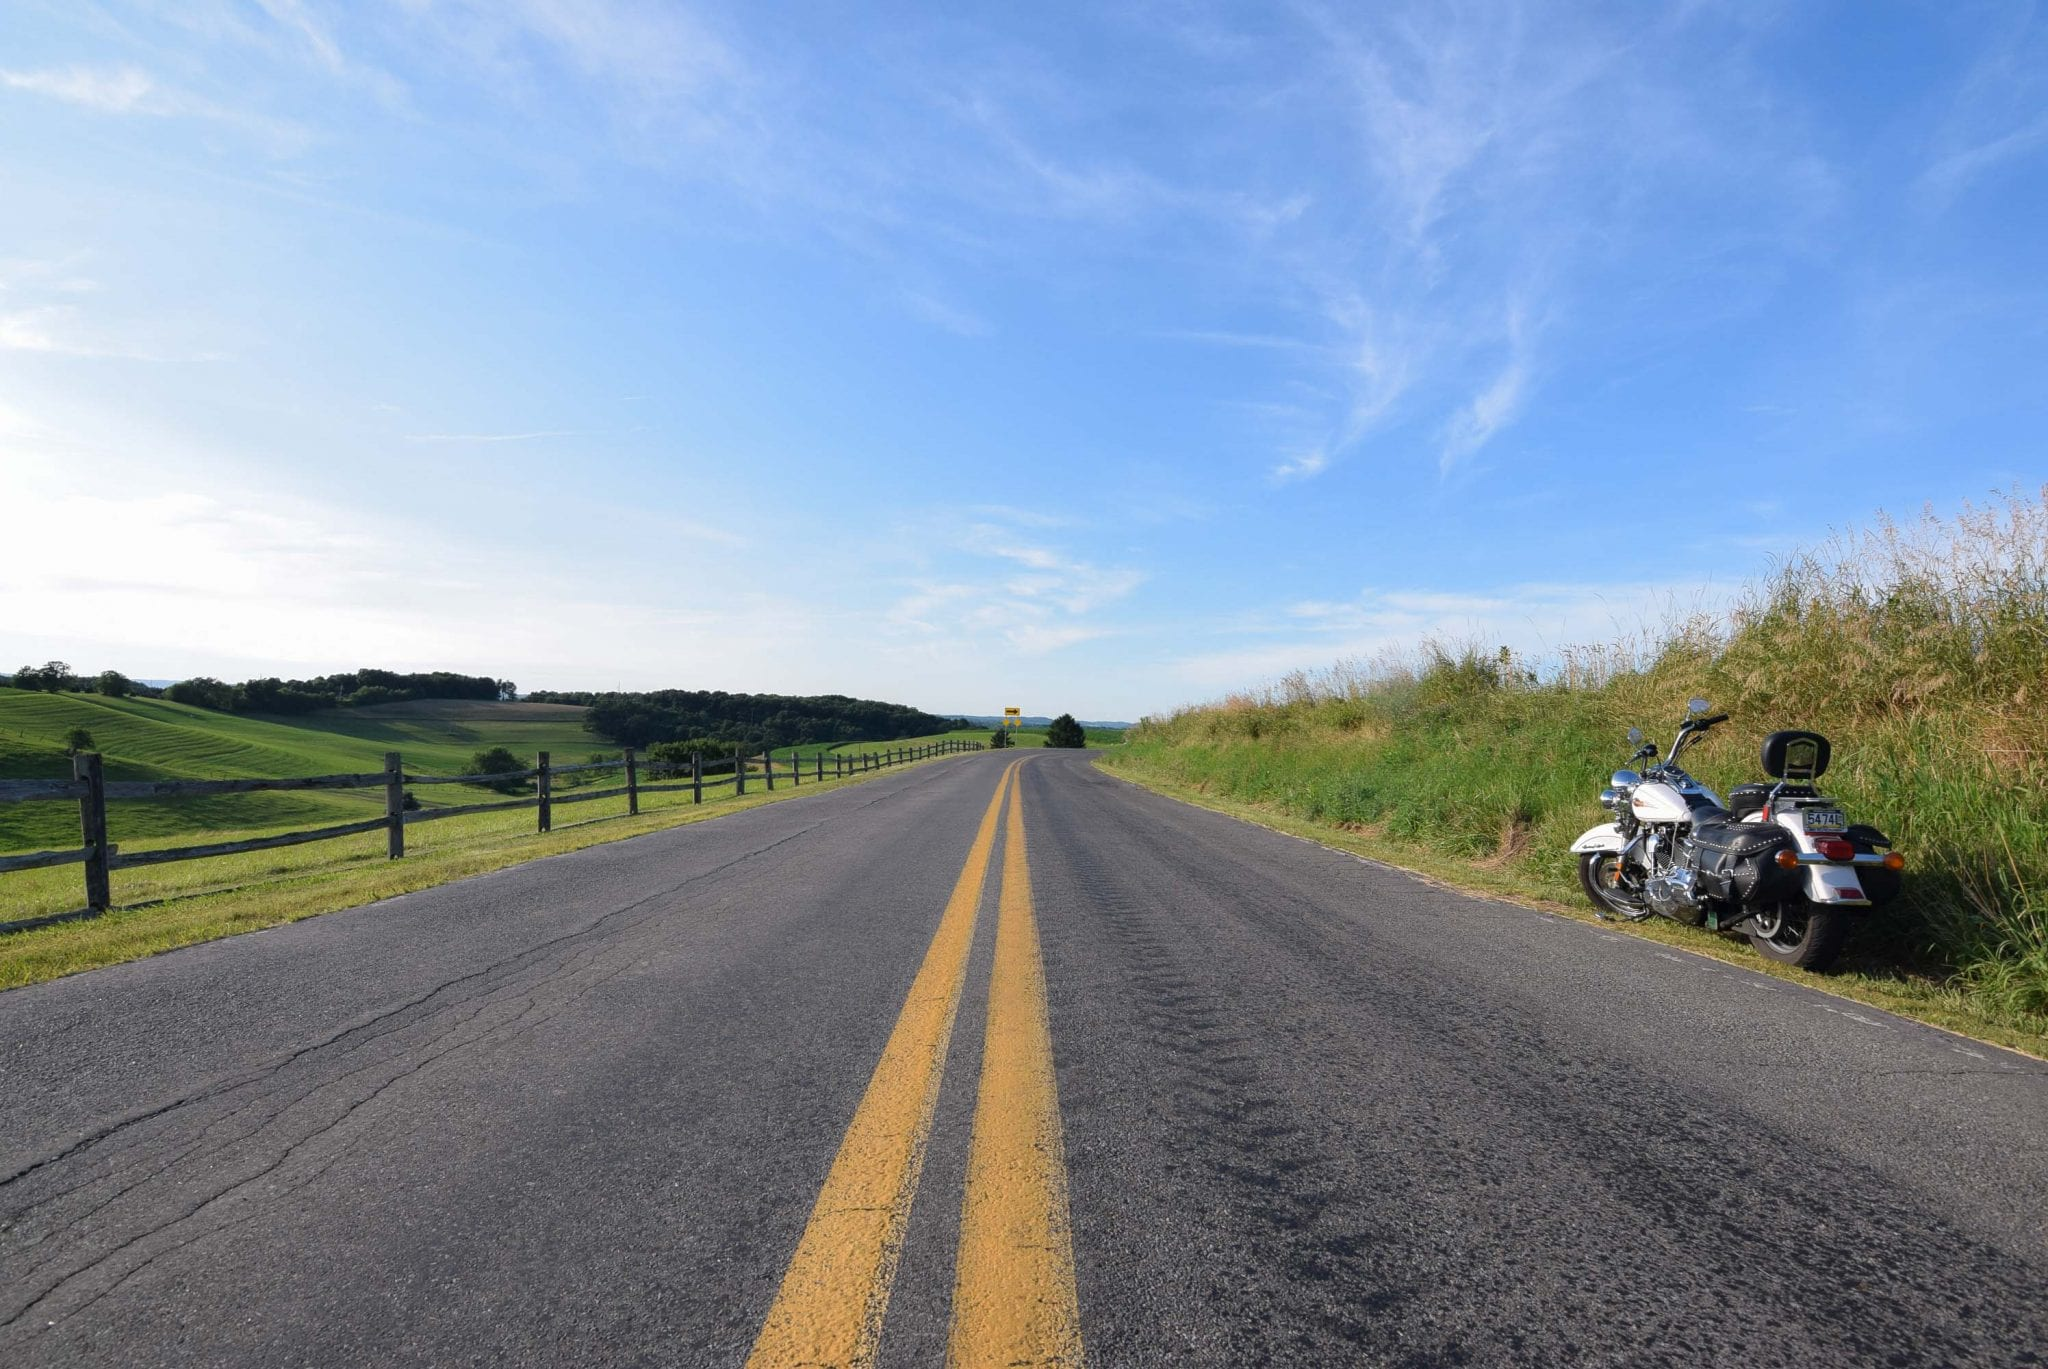 A white Harley Davidson sits on the shoulder of a broad country road under a brilliant blue sky.